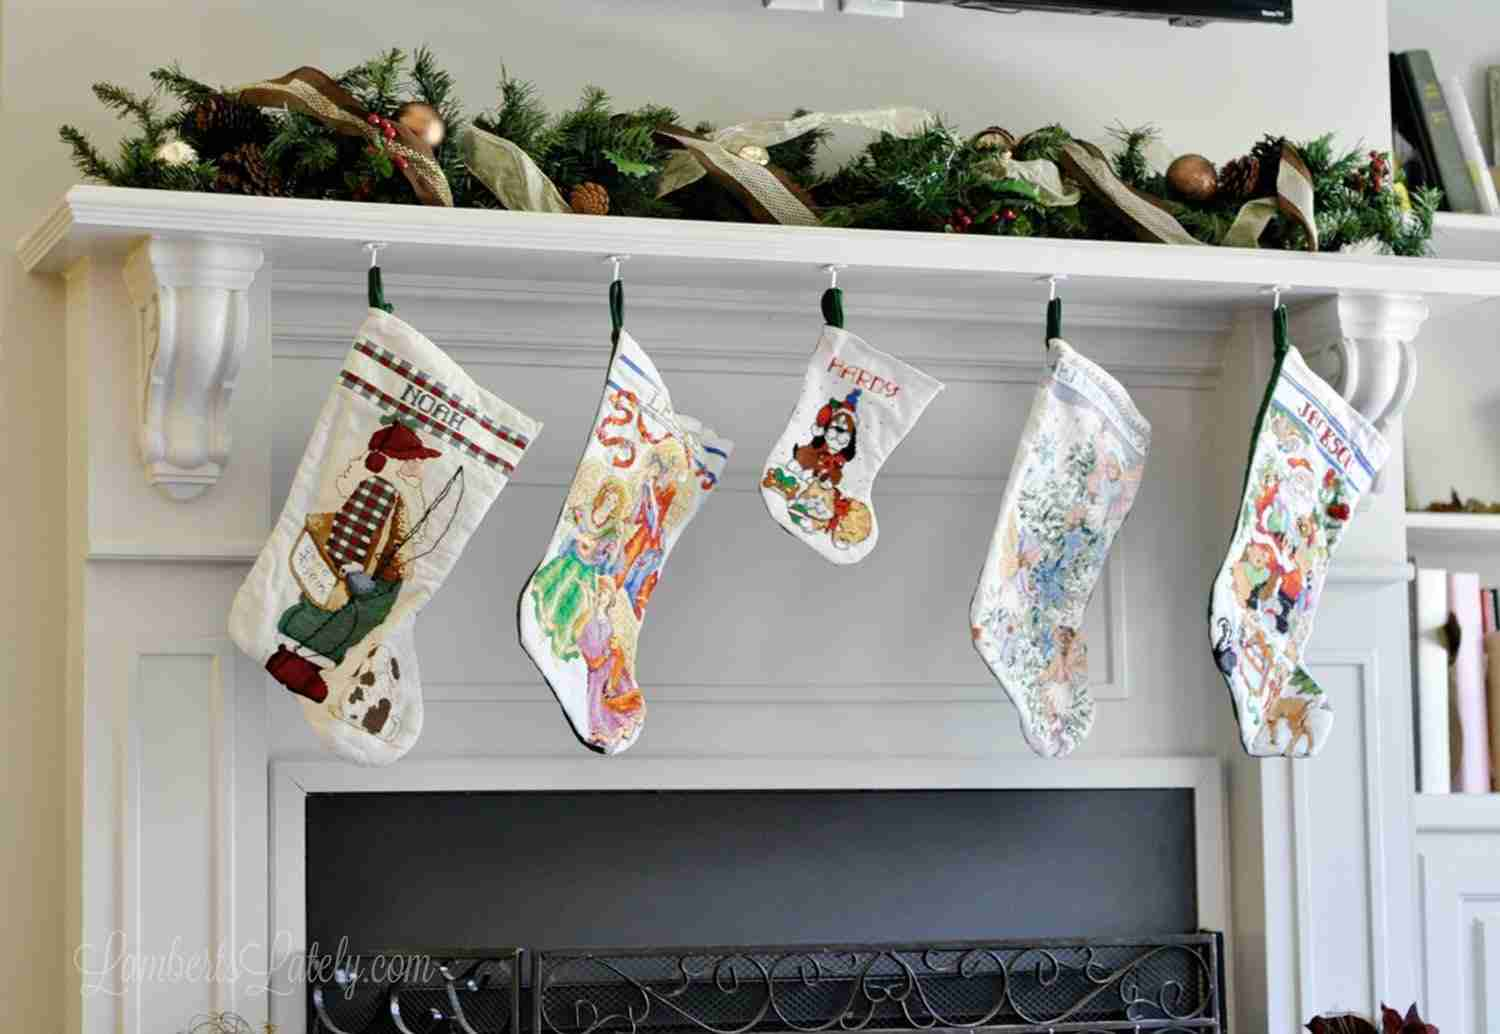 Check out this list of over 100 practical and fun baby stocking stuffers - great for a first Christmas. Has everything from small treats to unique clothing ideas for babies (both boy and girl)! Ranges from newborn to around 1 year old.